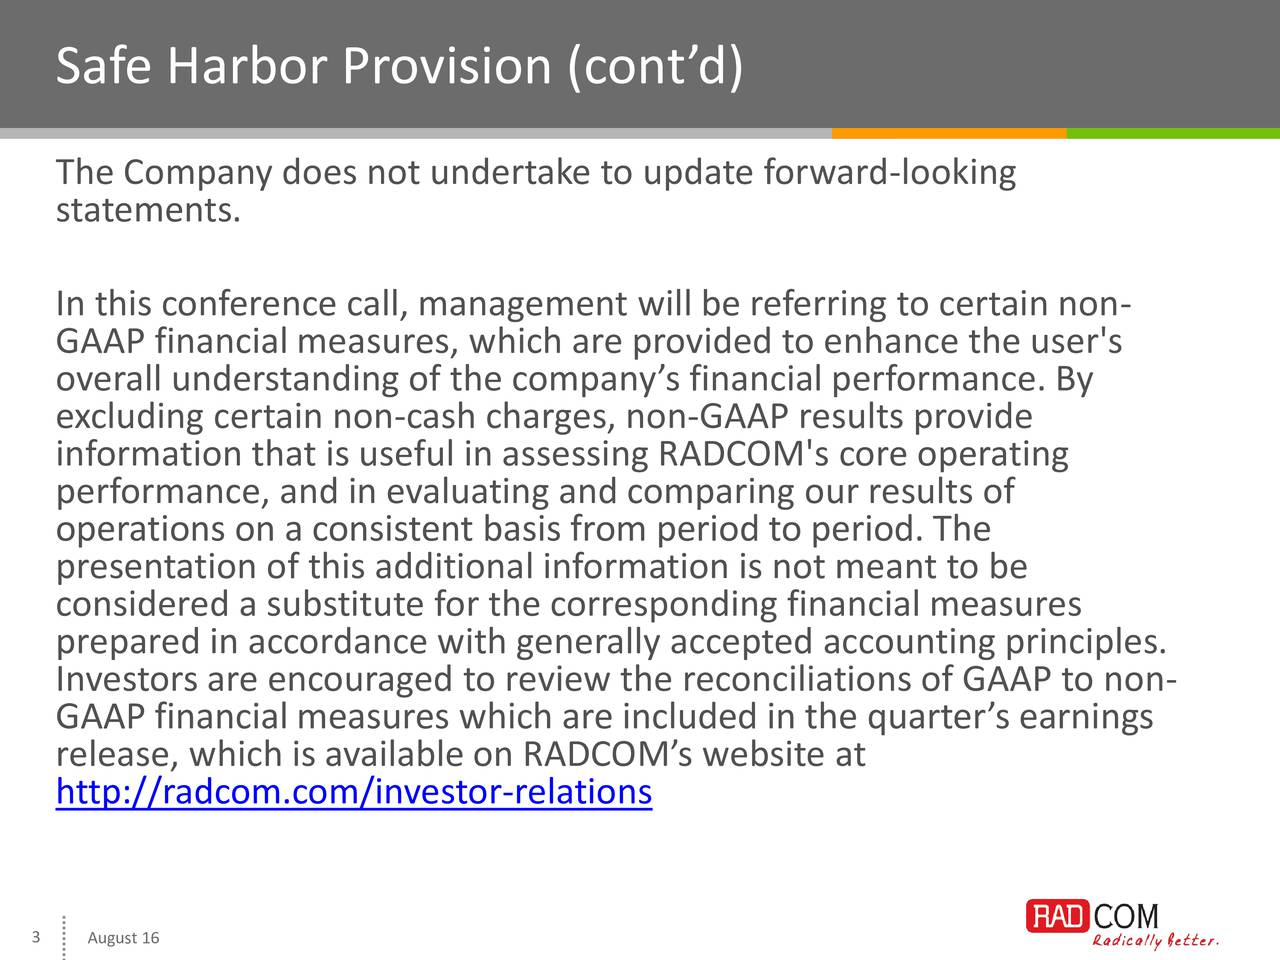 The Company does not undertake to update forward-looking statements. In this conference call, management will be referring to certain non- GAAP financial measures, which are provided to enhance the user's overall understanding of the companys financial performance. By excluding certain non-cash charges, non-GAAP results provide information that is useful in assessing RADCOM's core operating performance, and in evaluating and comparing our results of operations on a consistent basis from period to period. The presentation of this additional information is not meant to be considered a substitute for the corresponding financial measures prepared in accordance with generally accepted accounting principles. Investors are encouraged to review the reconciliations of GAAP to non- GAAP financial measures which are included in the quarters earnings release, which is available on RADCOMs website at http://radcom.com/investor-relations